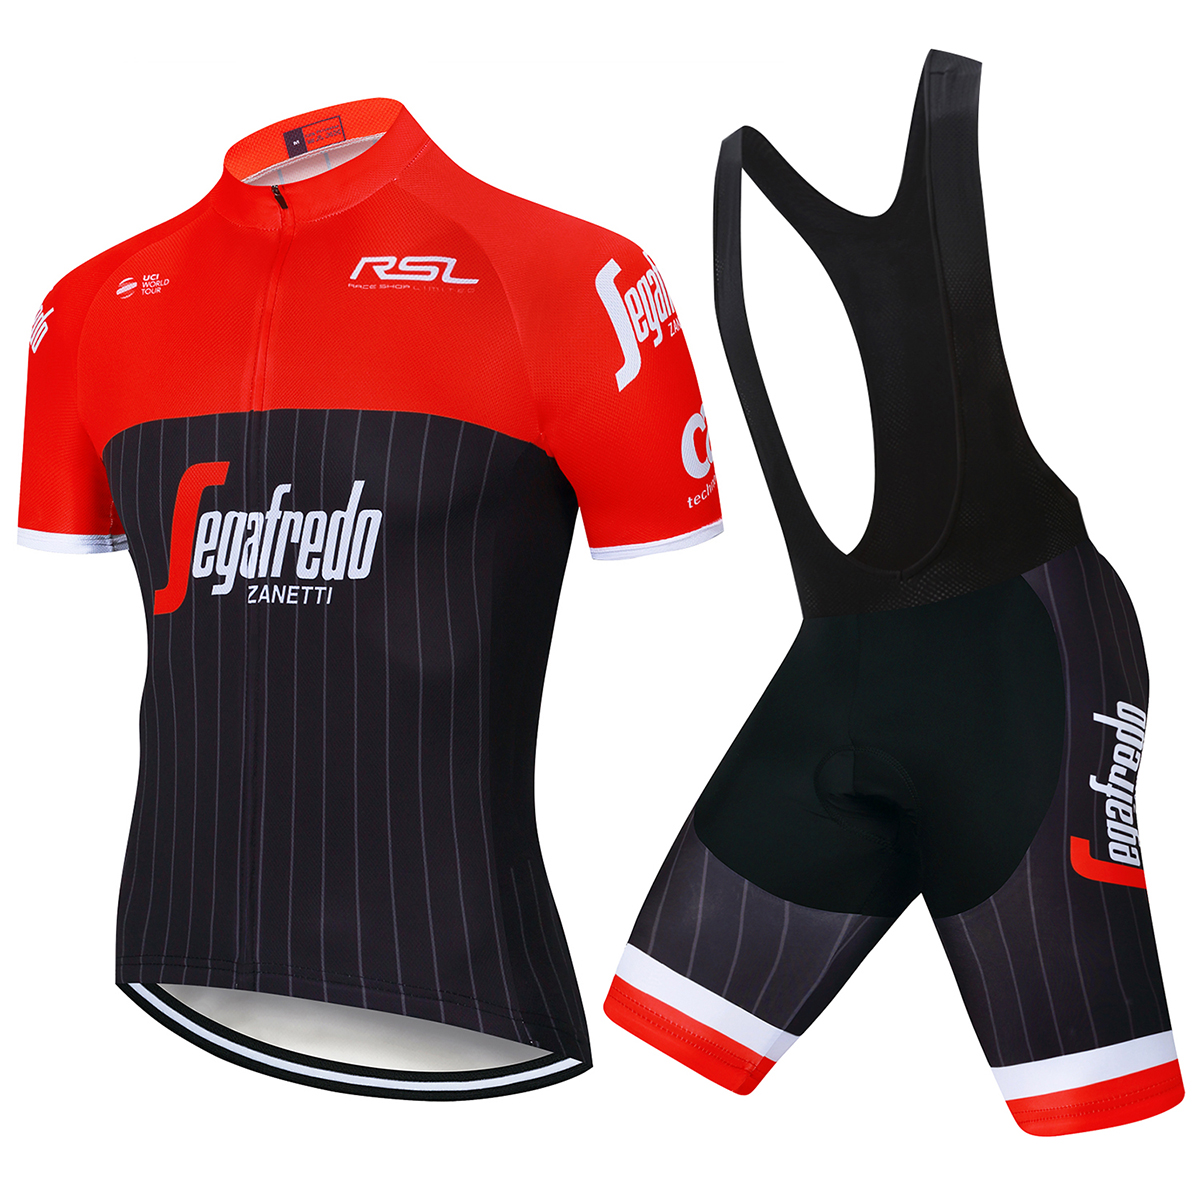 2018 RED TERKKING Team Summer Pro Sporting Racing UCI World Tour Pro Cycling Jersey Bike Shorts Set Ropa Ciclismo Bicycle Wear